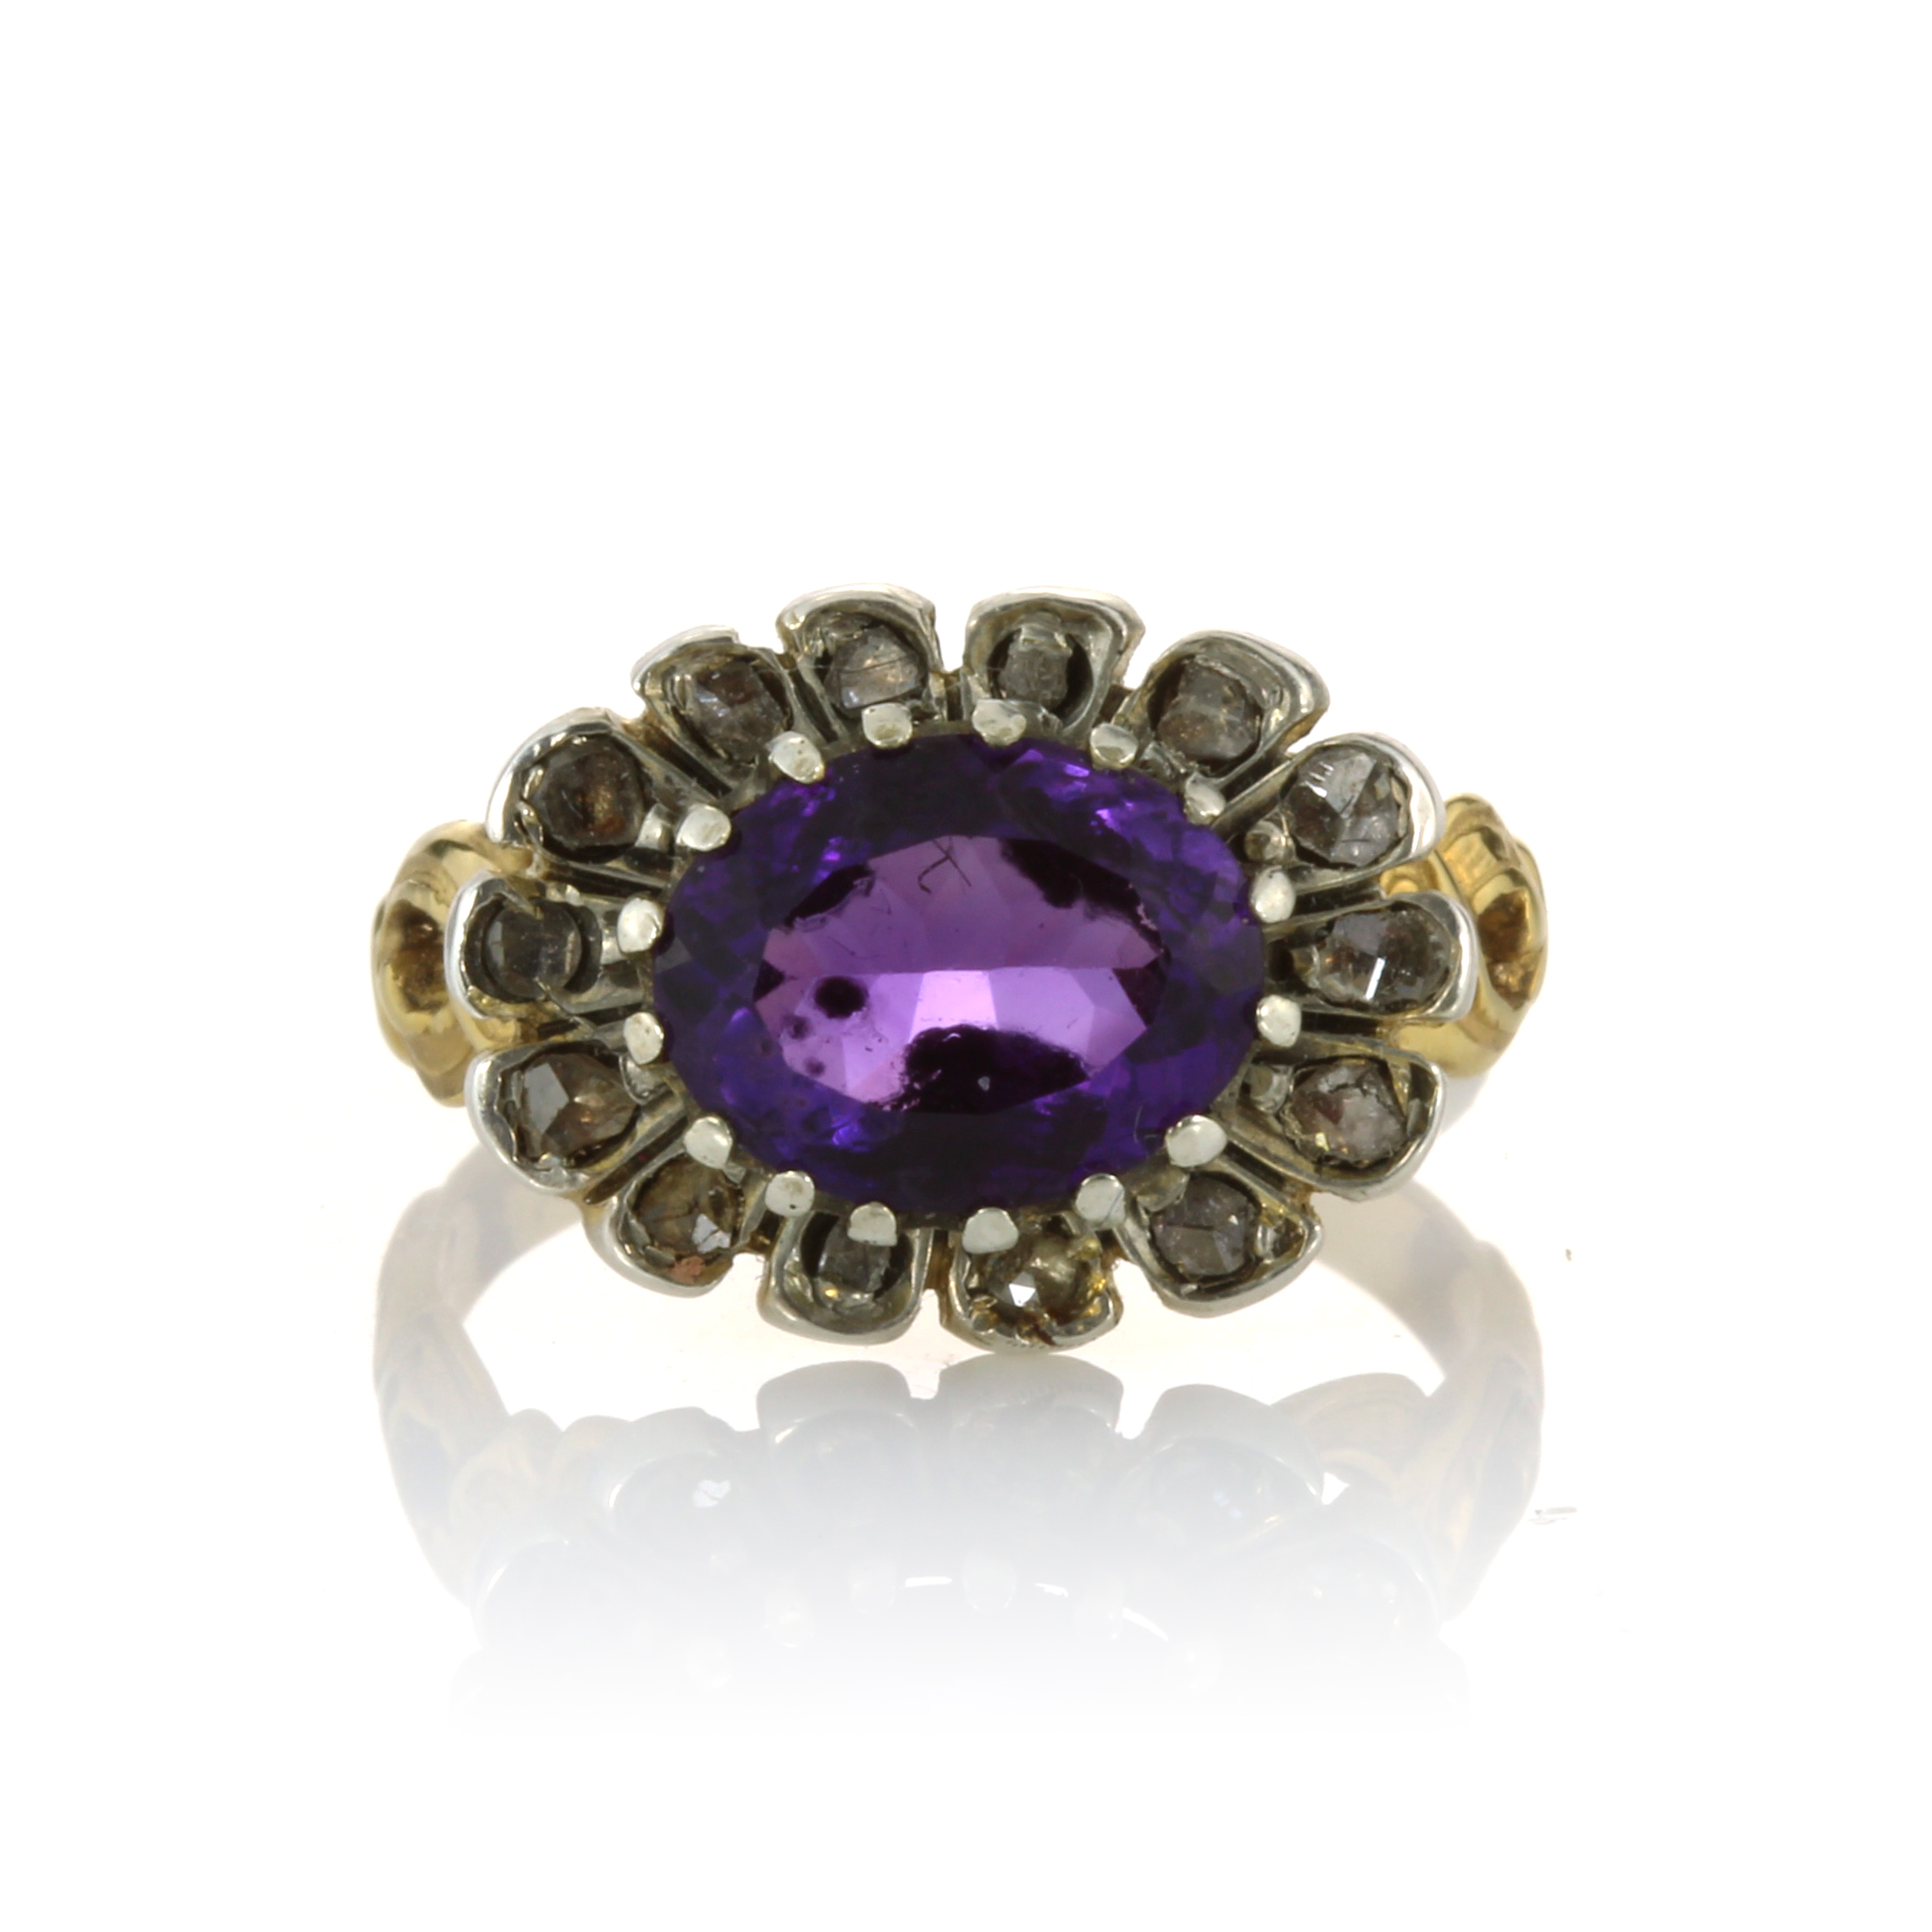 Los 30 - AN ANTIQUE AMETHYST AND DIAMOND DRESS RING, 19TH CENTURY set with an oval cut amethyst surrounded by